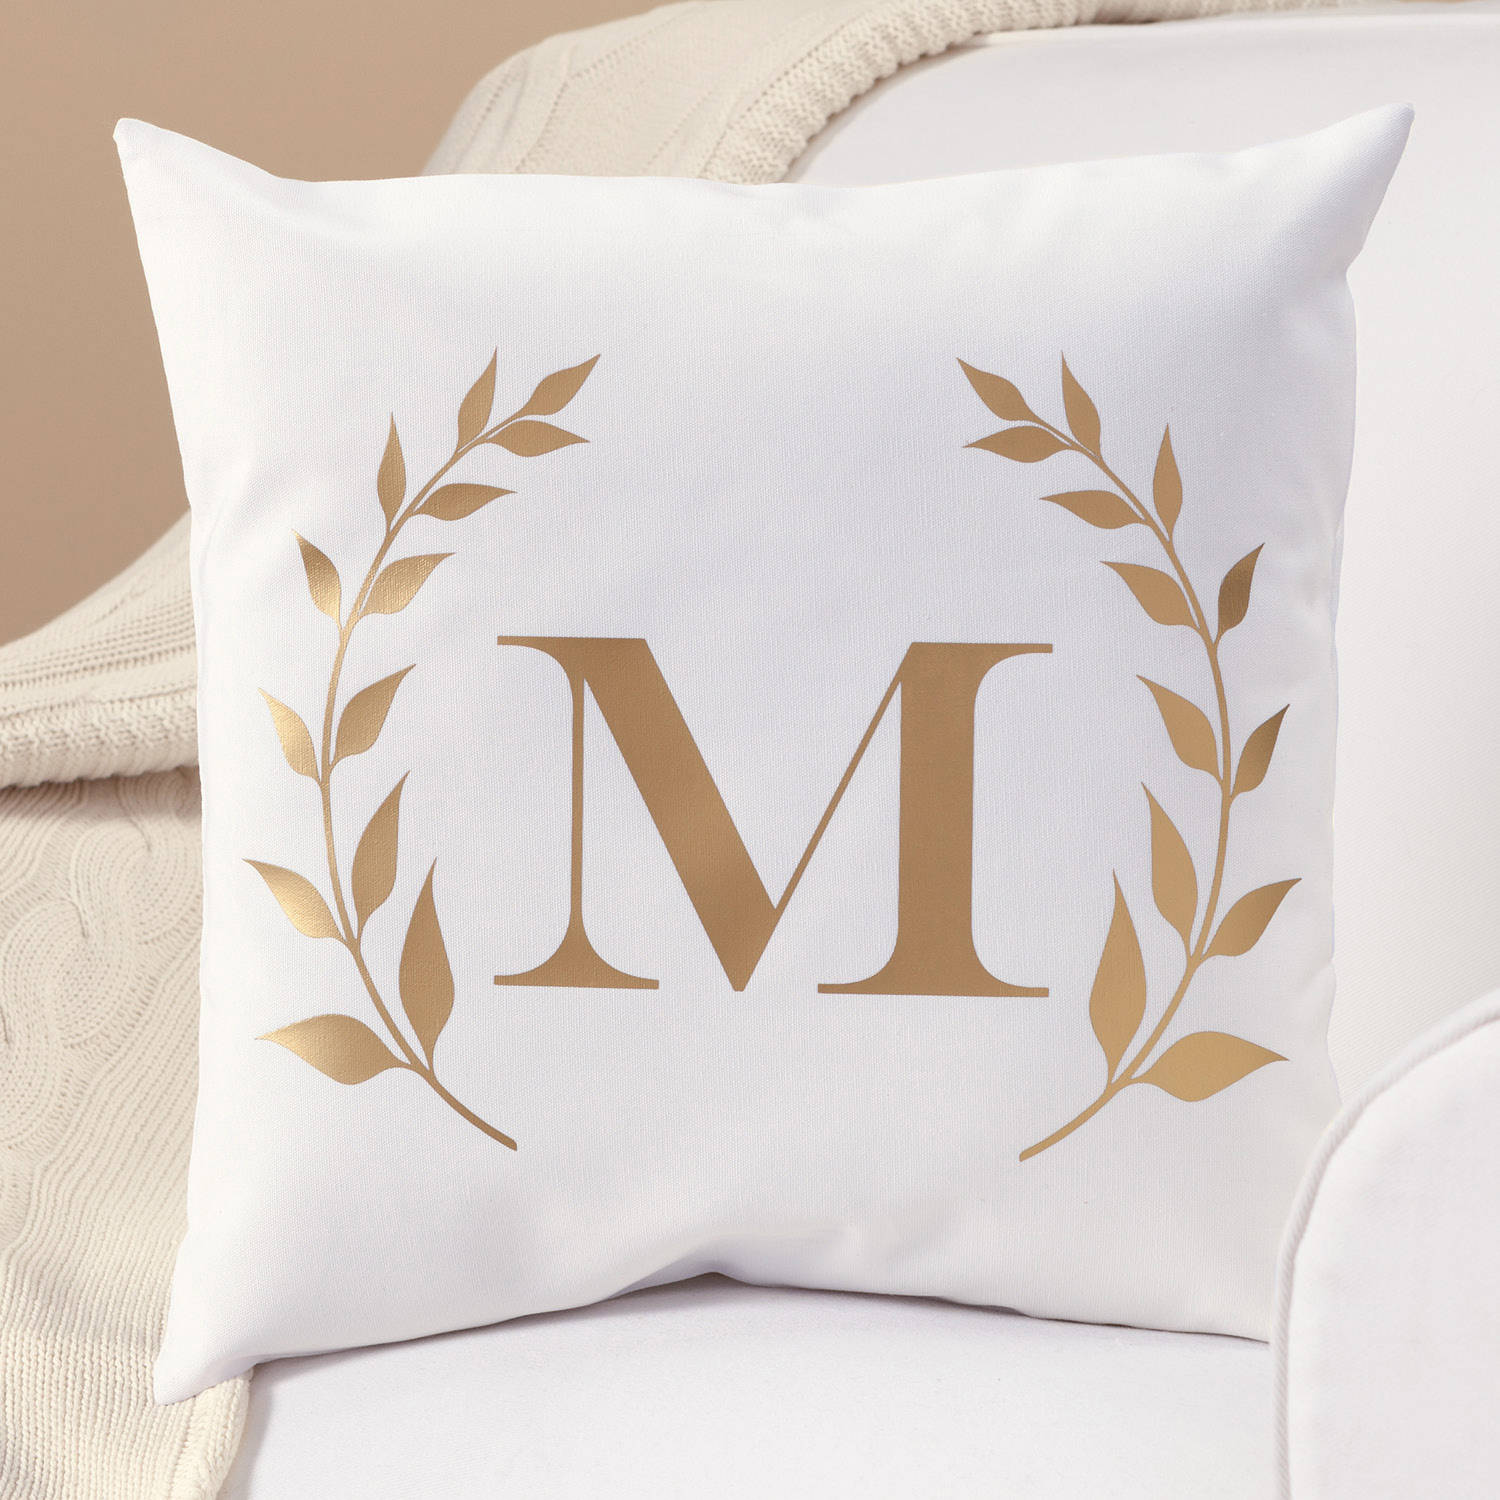 Decor astonishing gold throw pillows for home accessories for Decor pillows